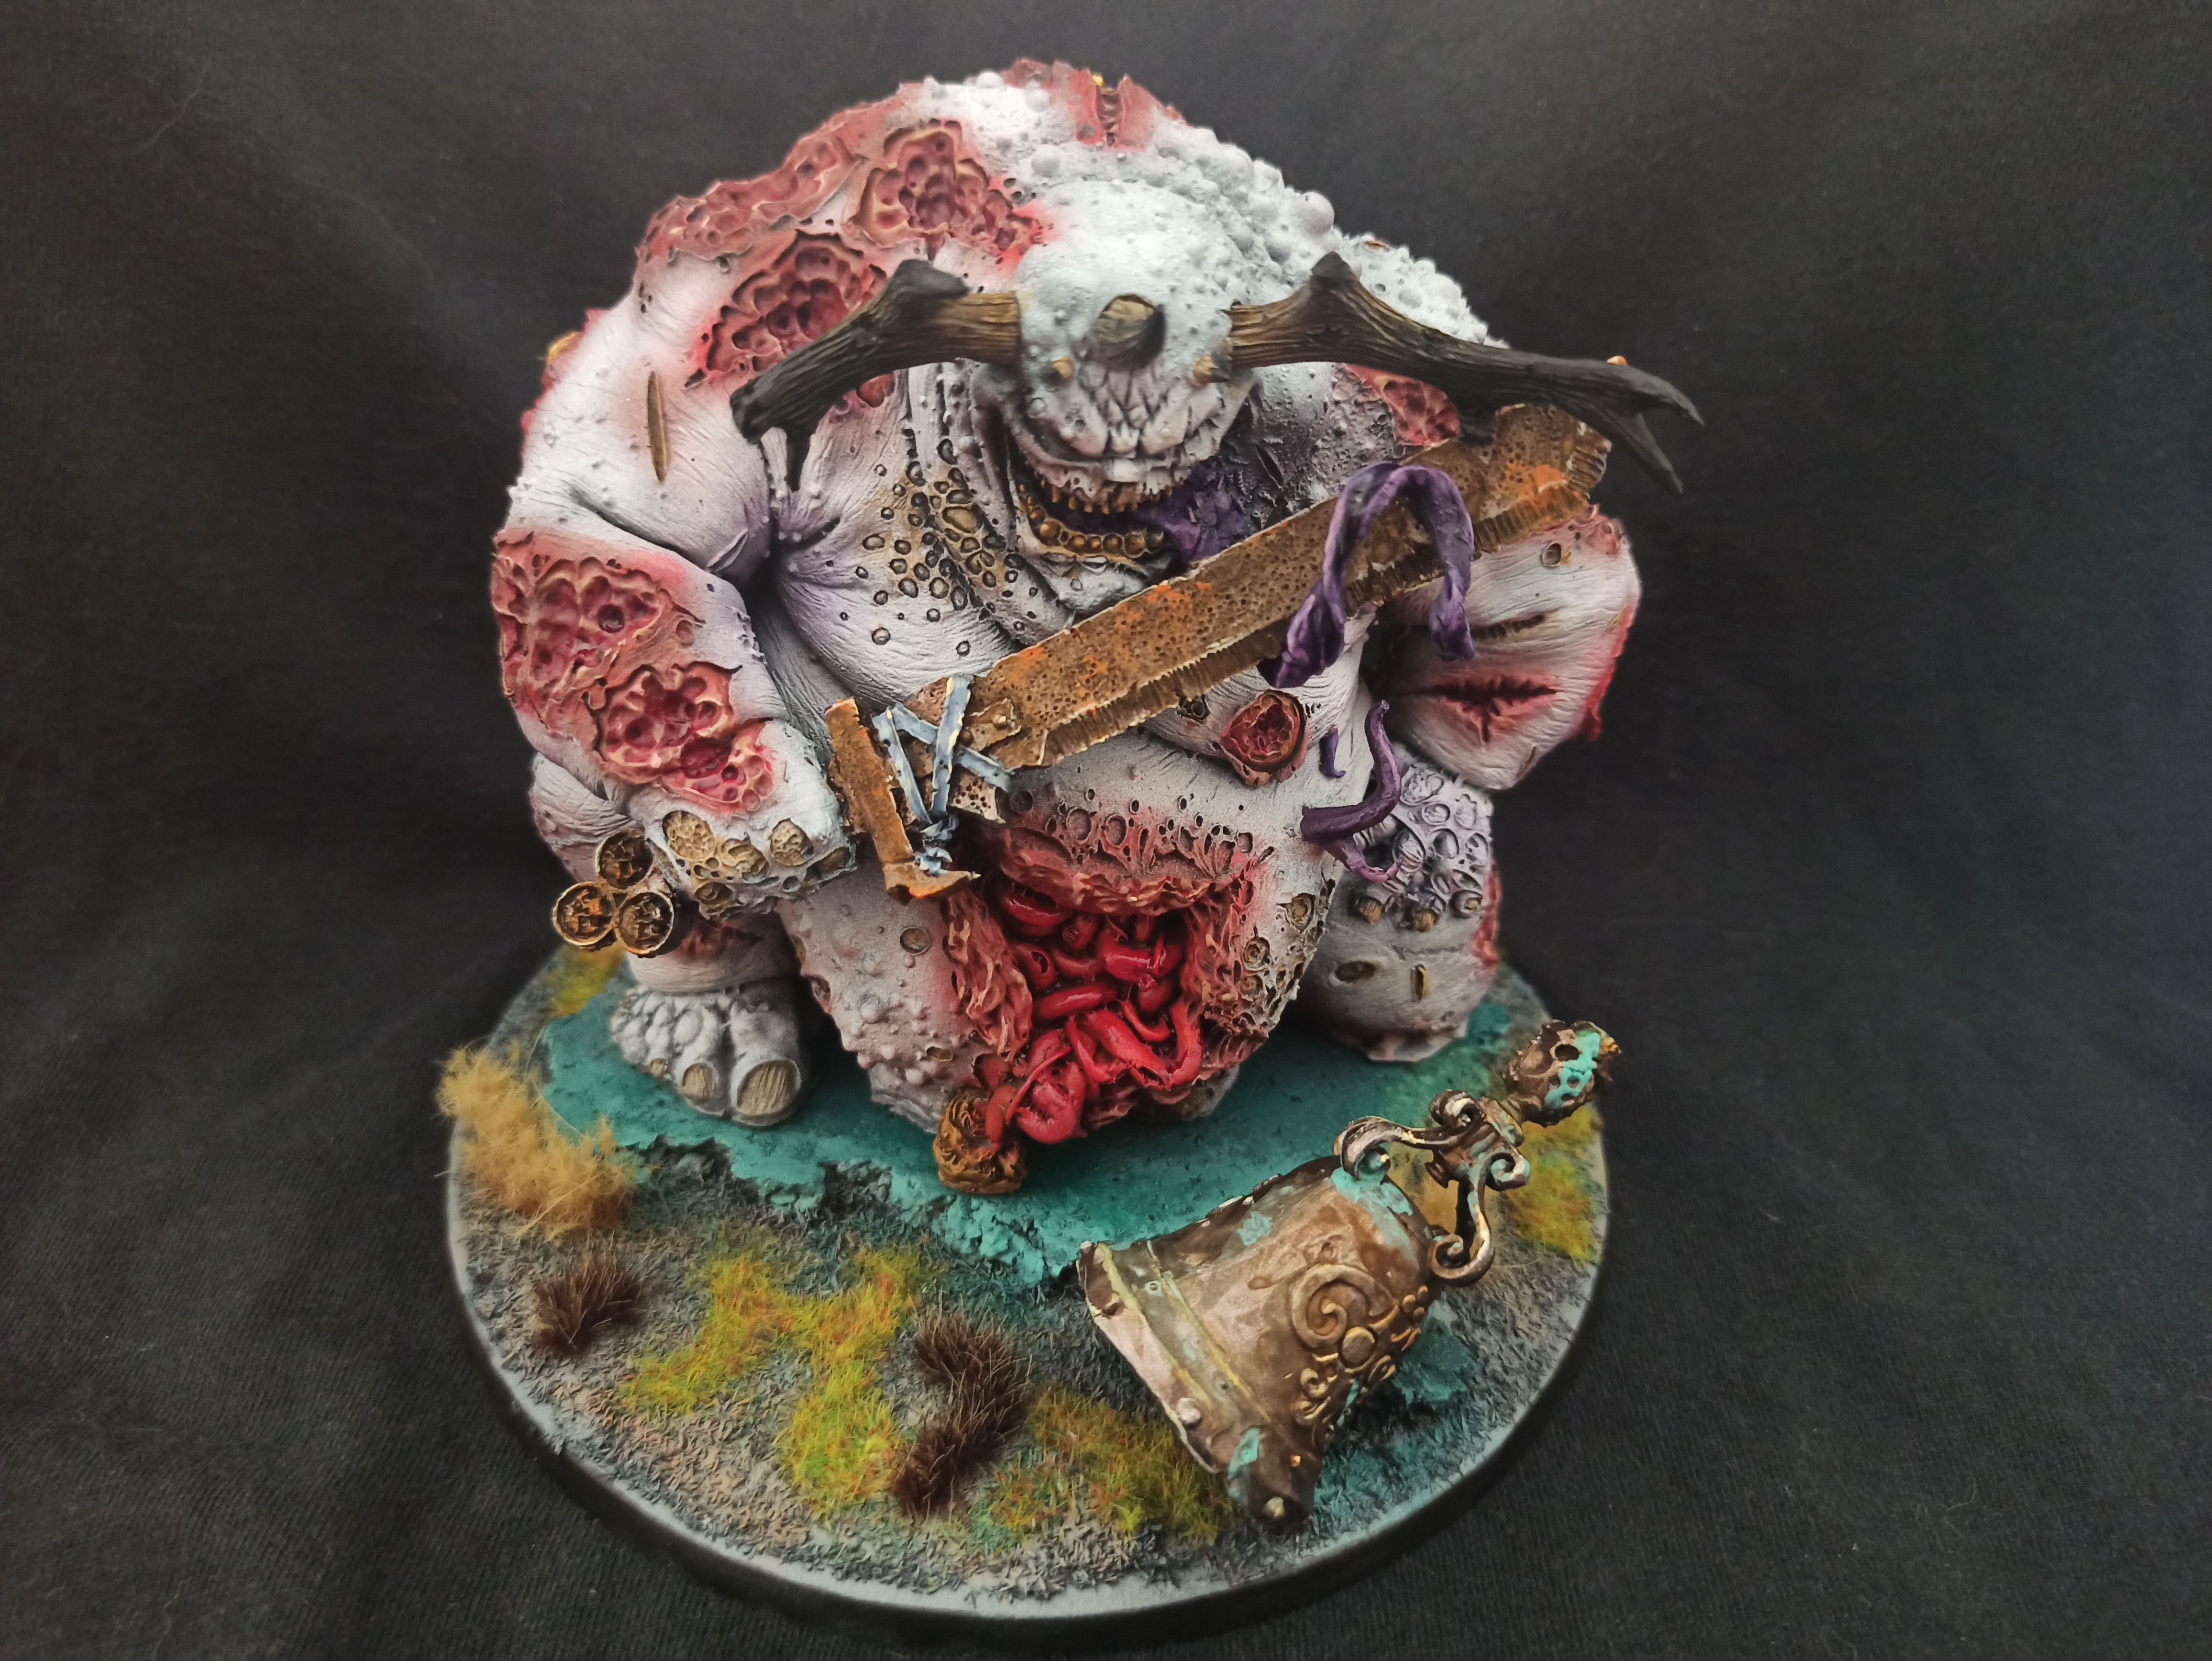 Unclean One